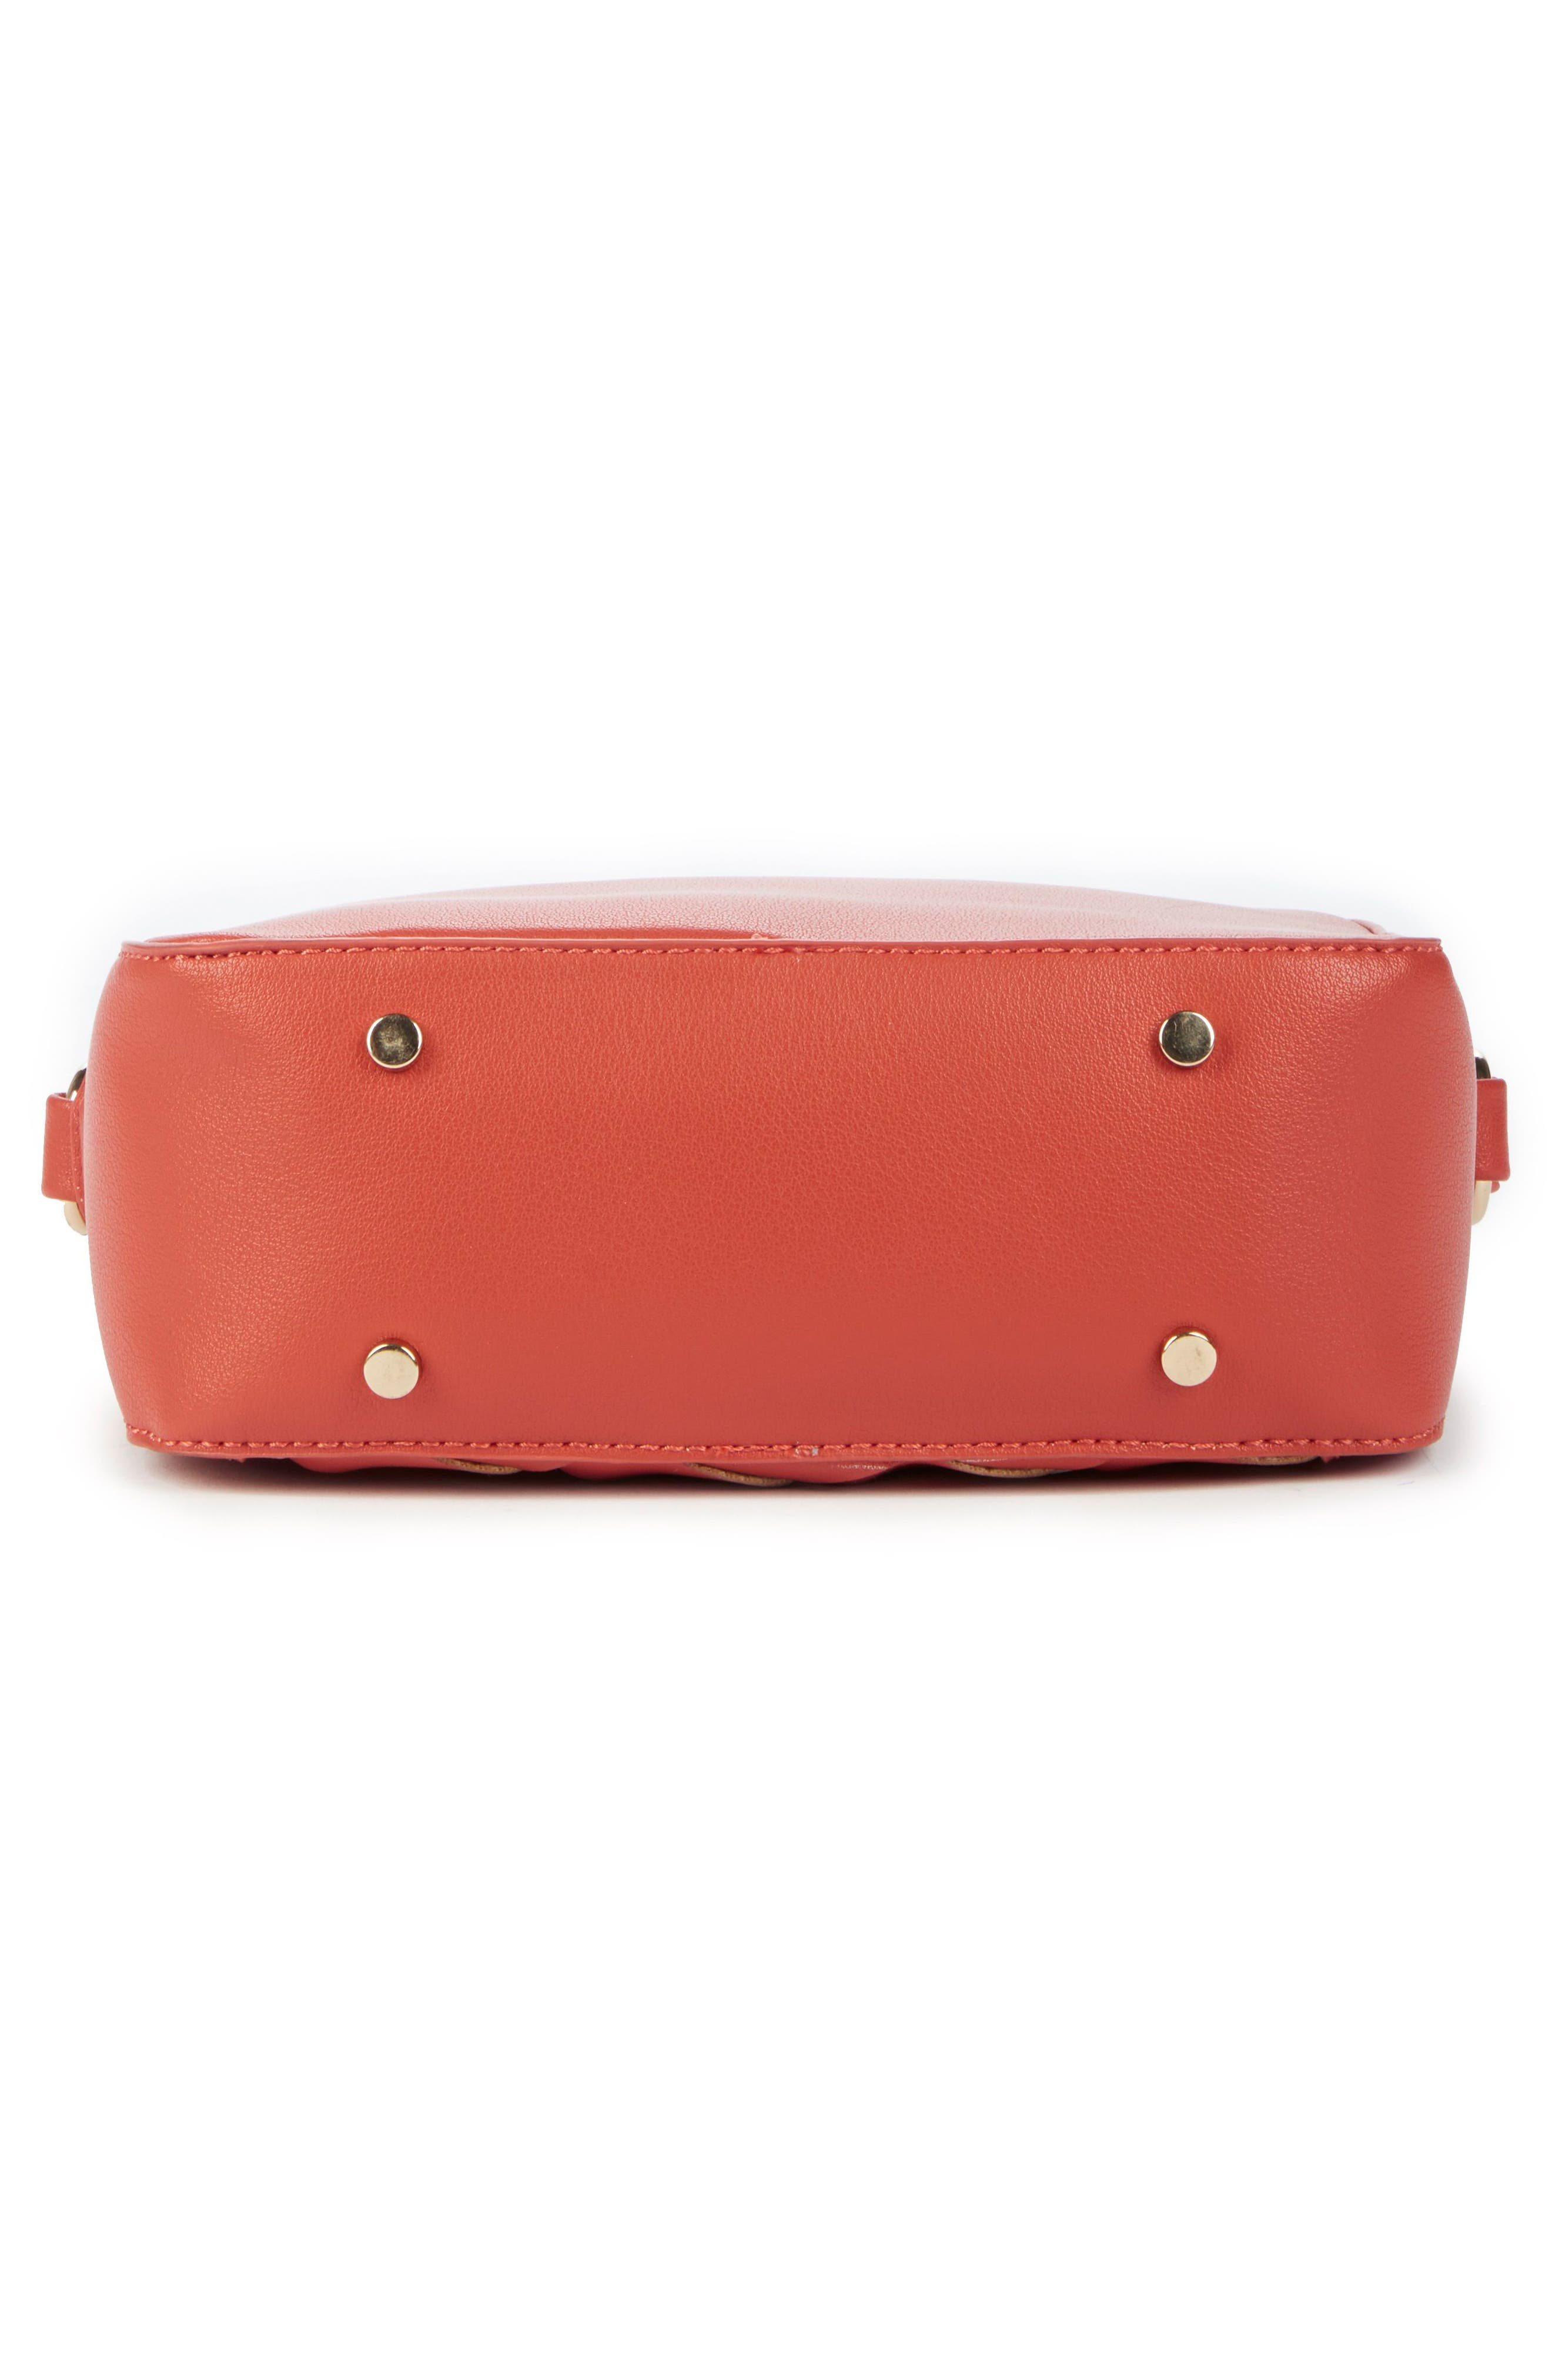 Hand Woven Faux Leather Crossbody Bag,                             Alternate thumbnail 5, color,                             Coral